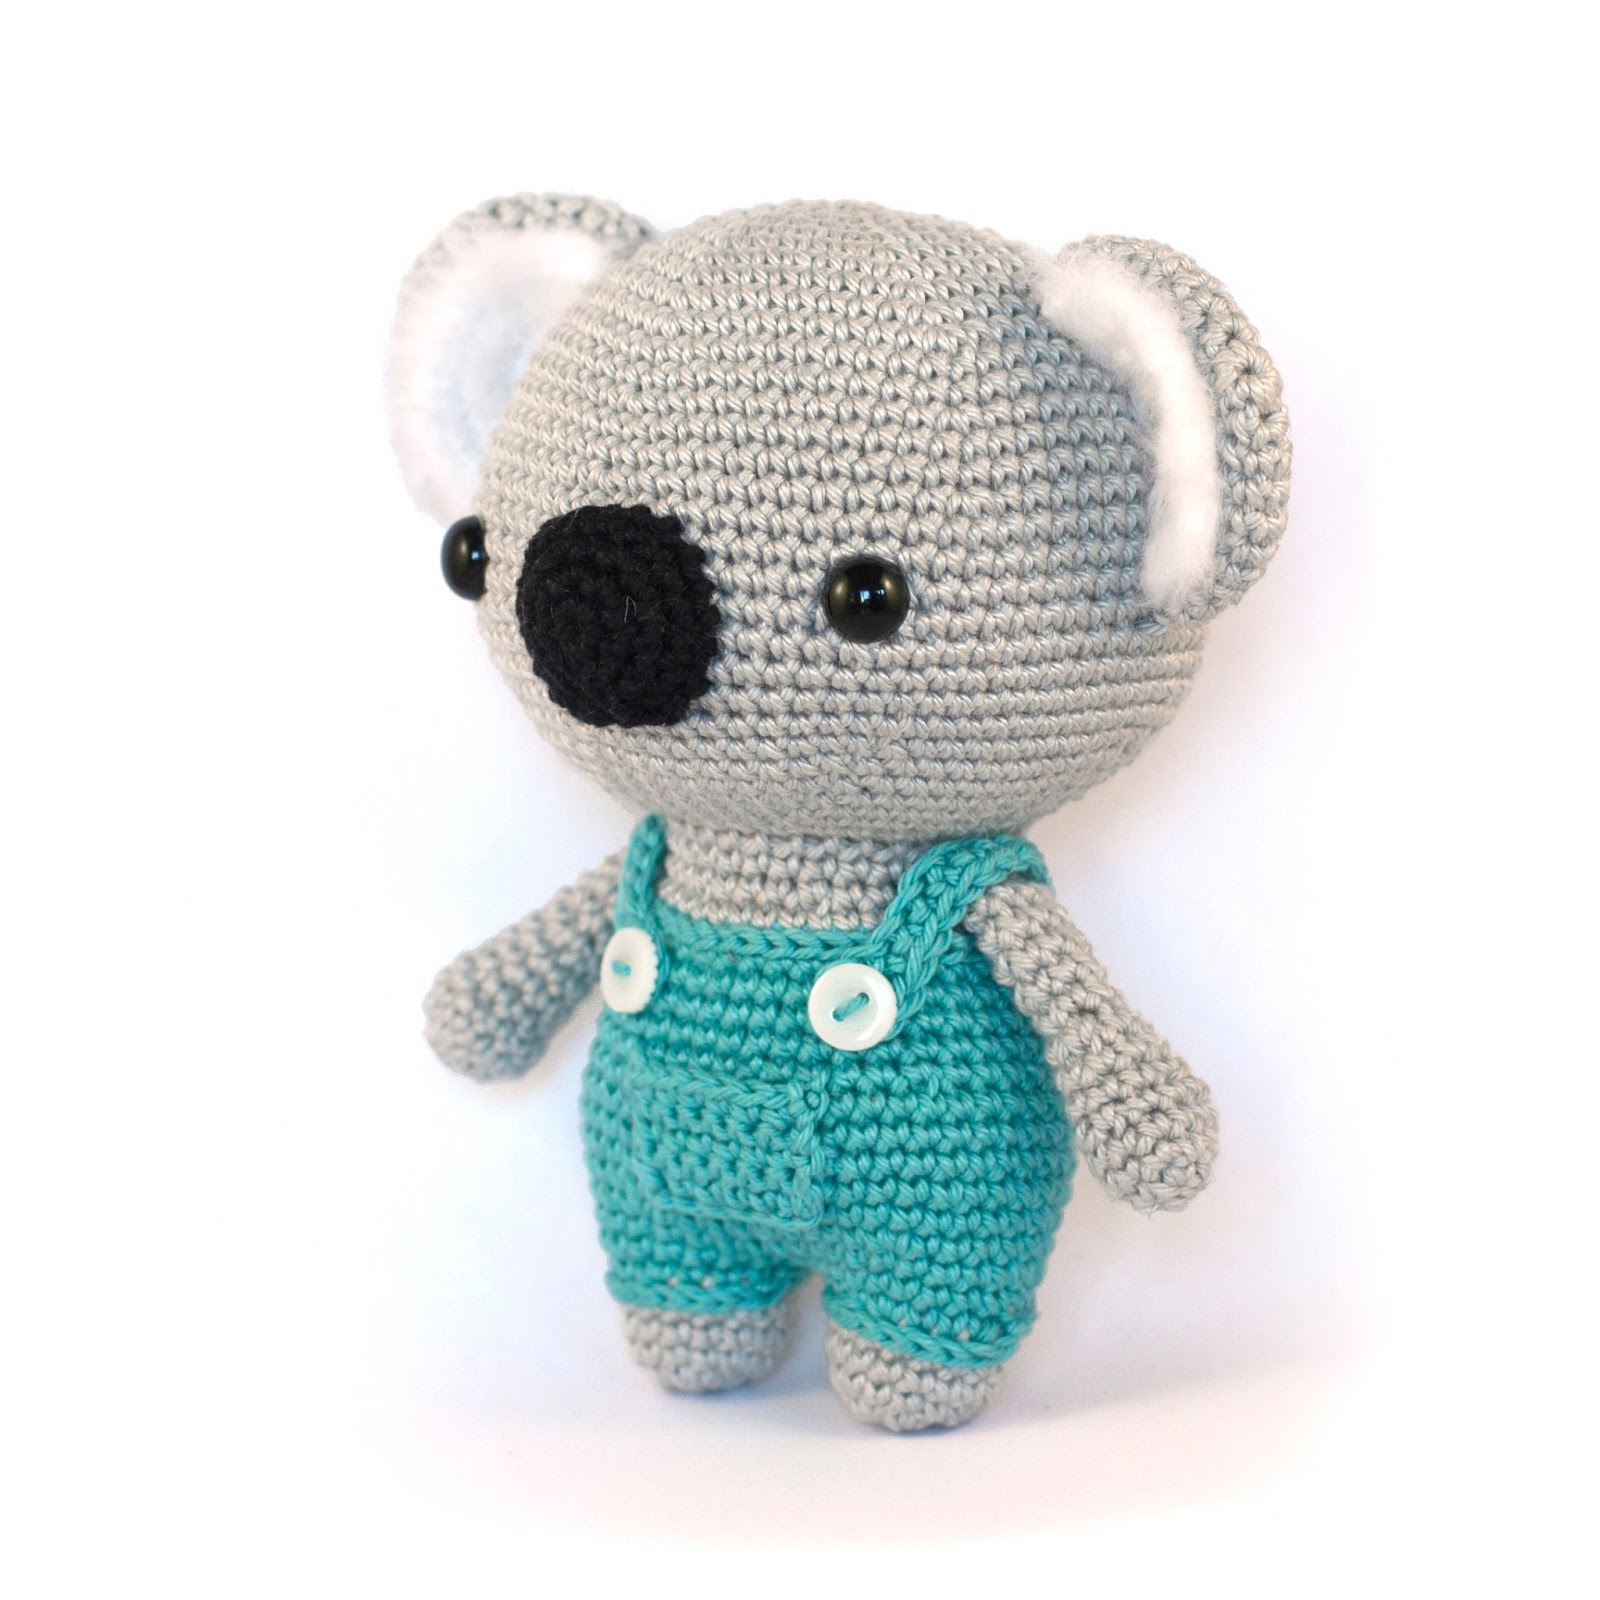 Amigurumi Koala Tutorial : Toy Patterns by DIY Fluffies : Koala amigurumi pattern